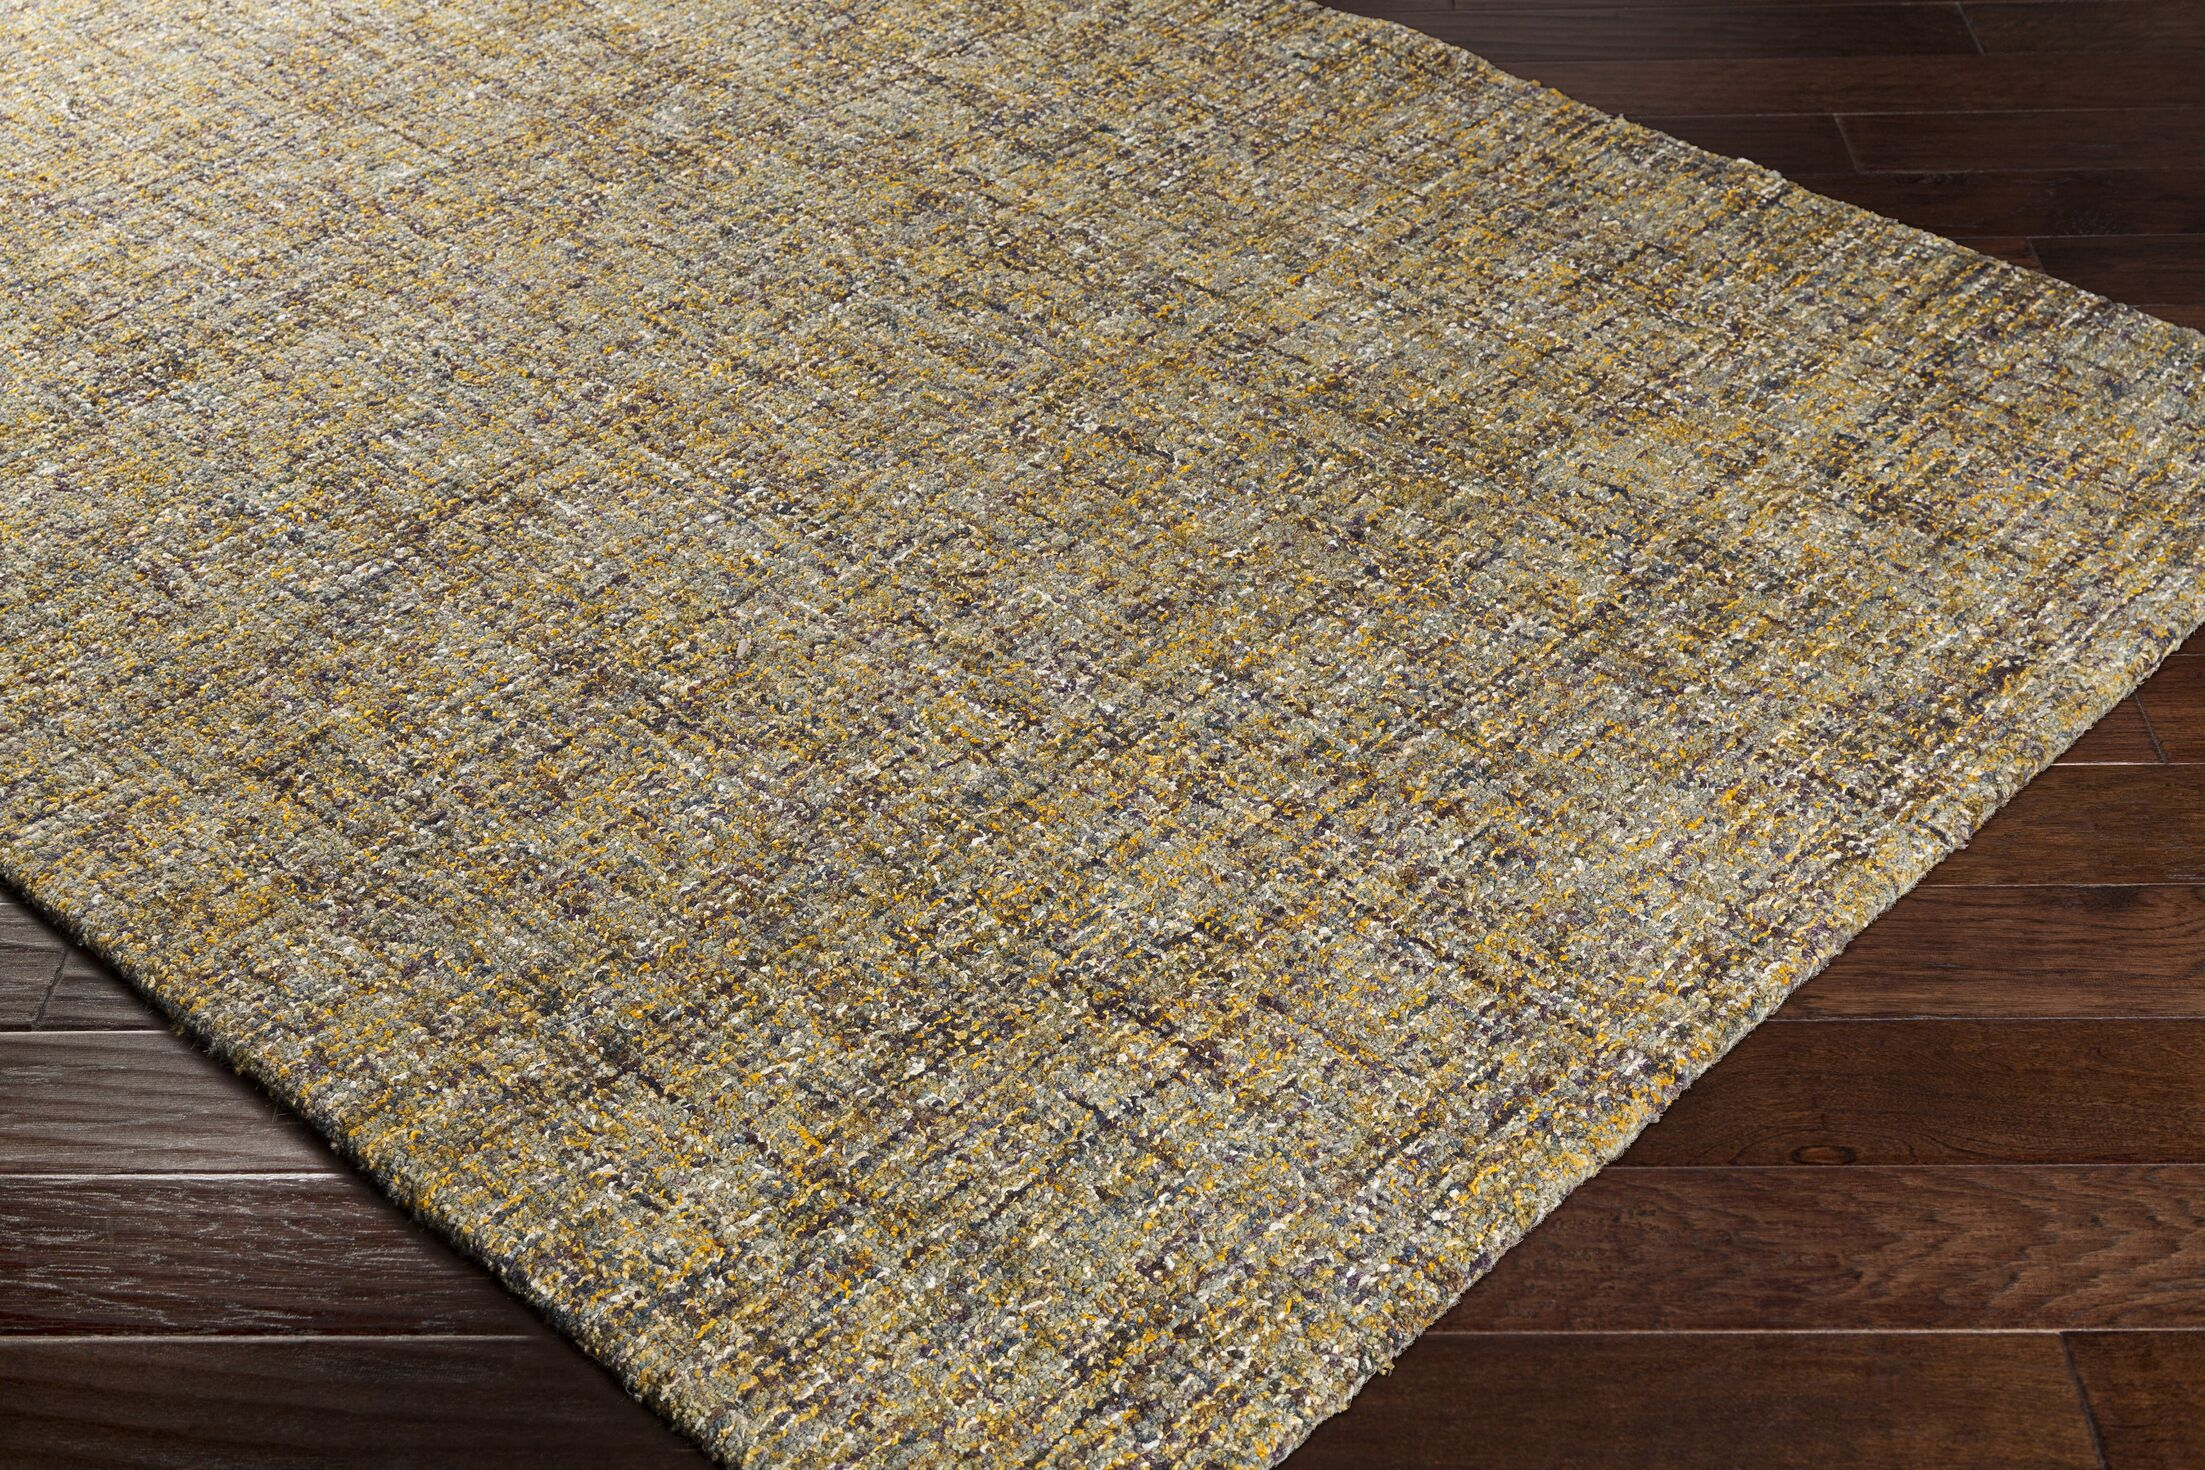 Charboneau Hand-Tufted Yellow/Brown Area Rug Rug Size: Rectangle 2' x 3'